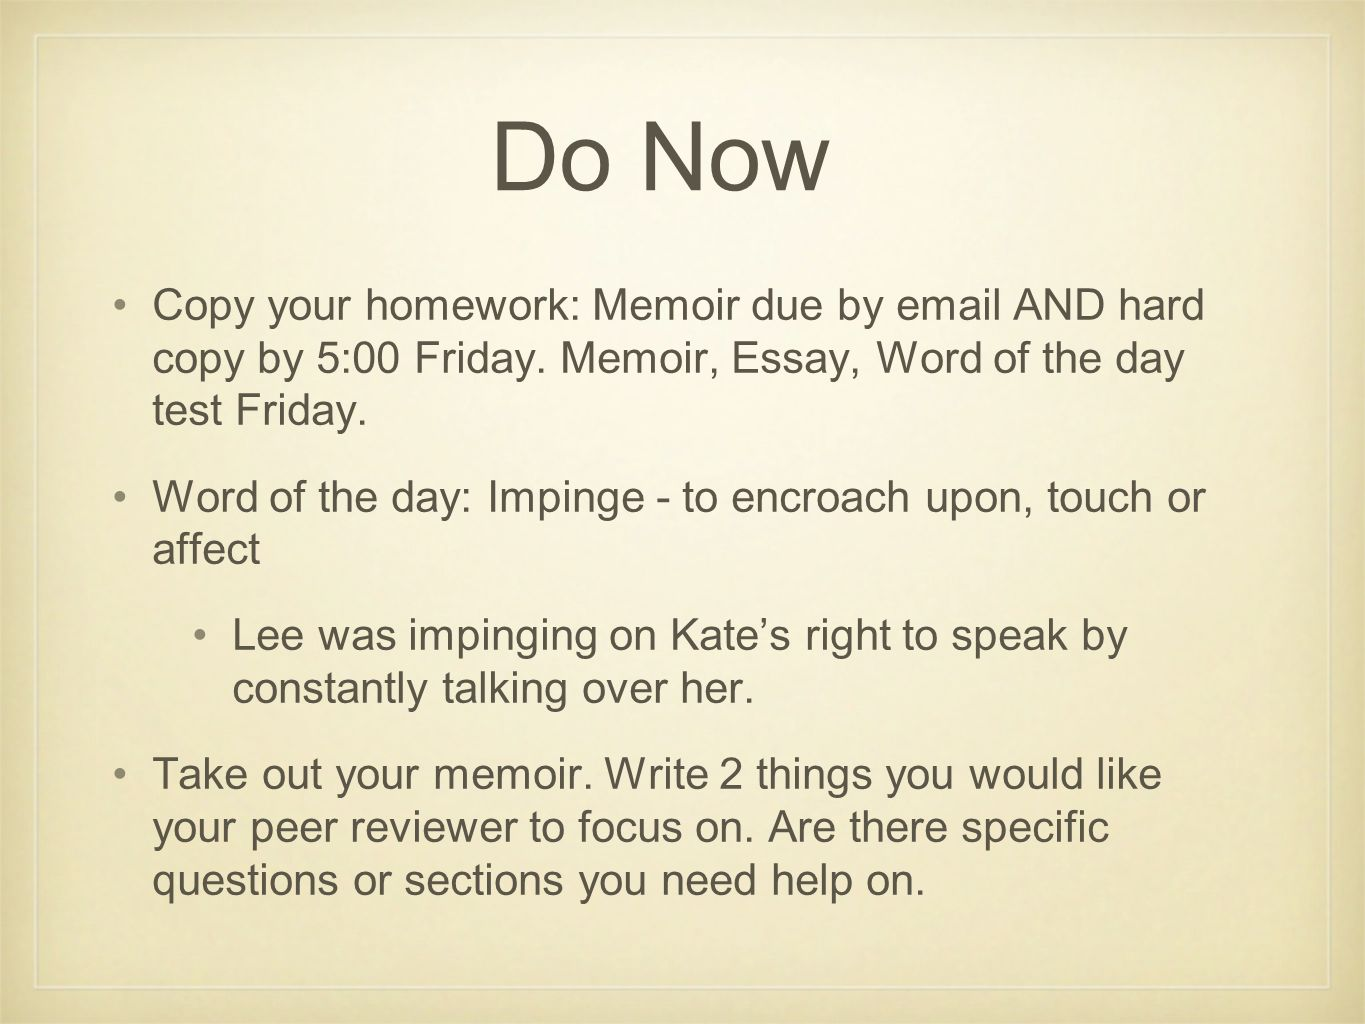 about spring essay yoga